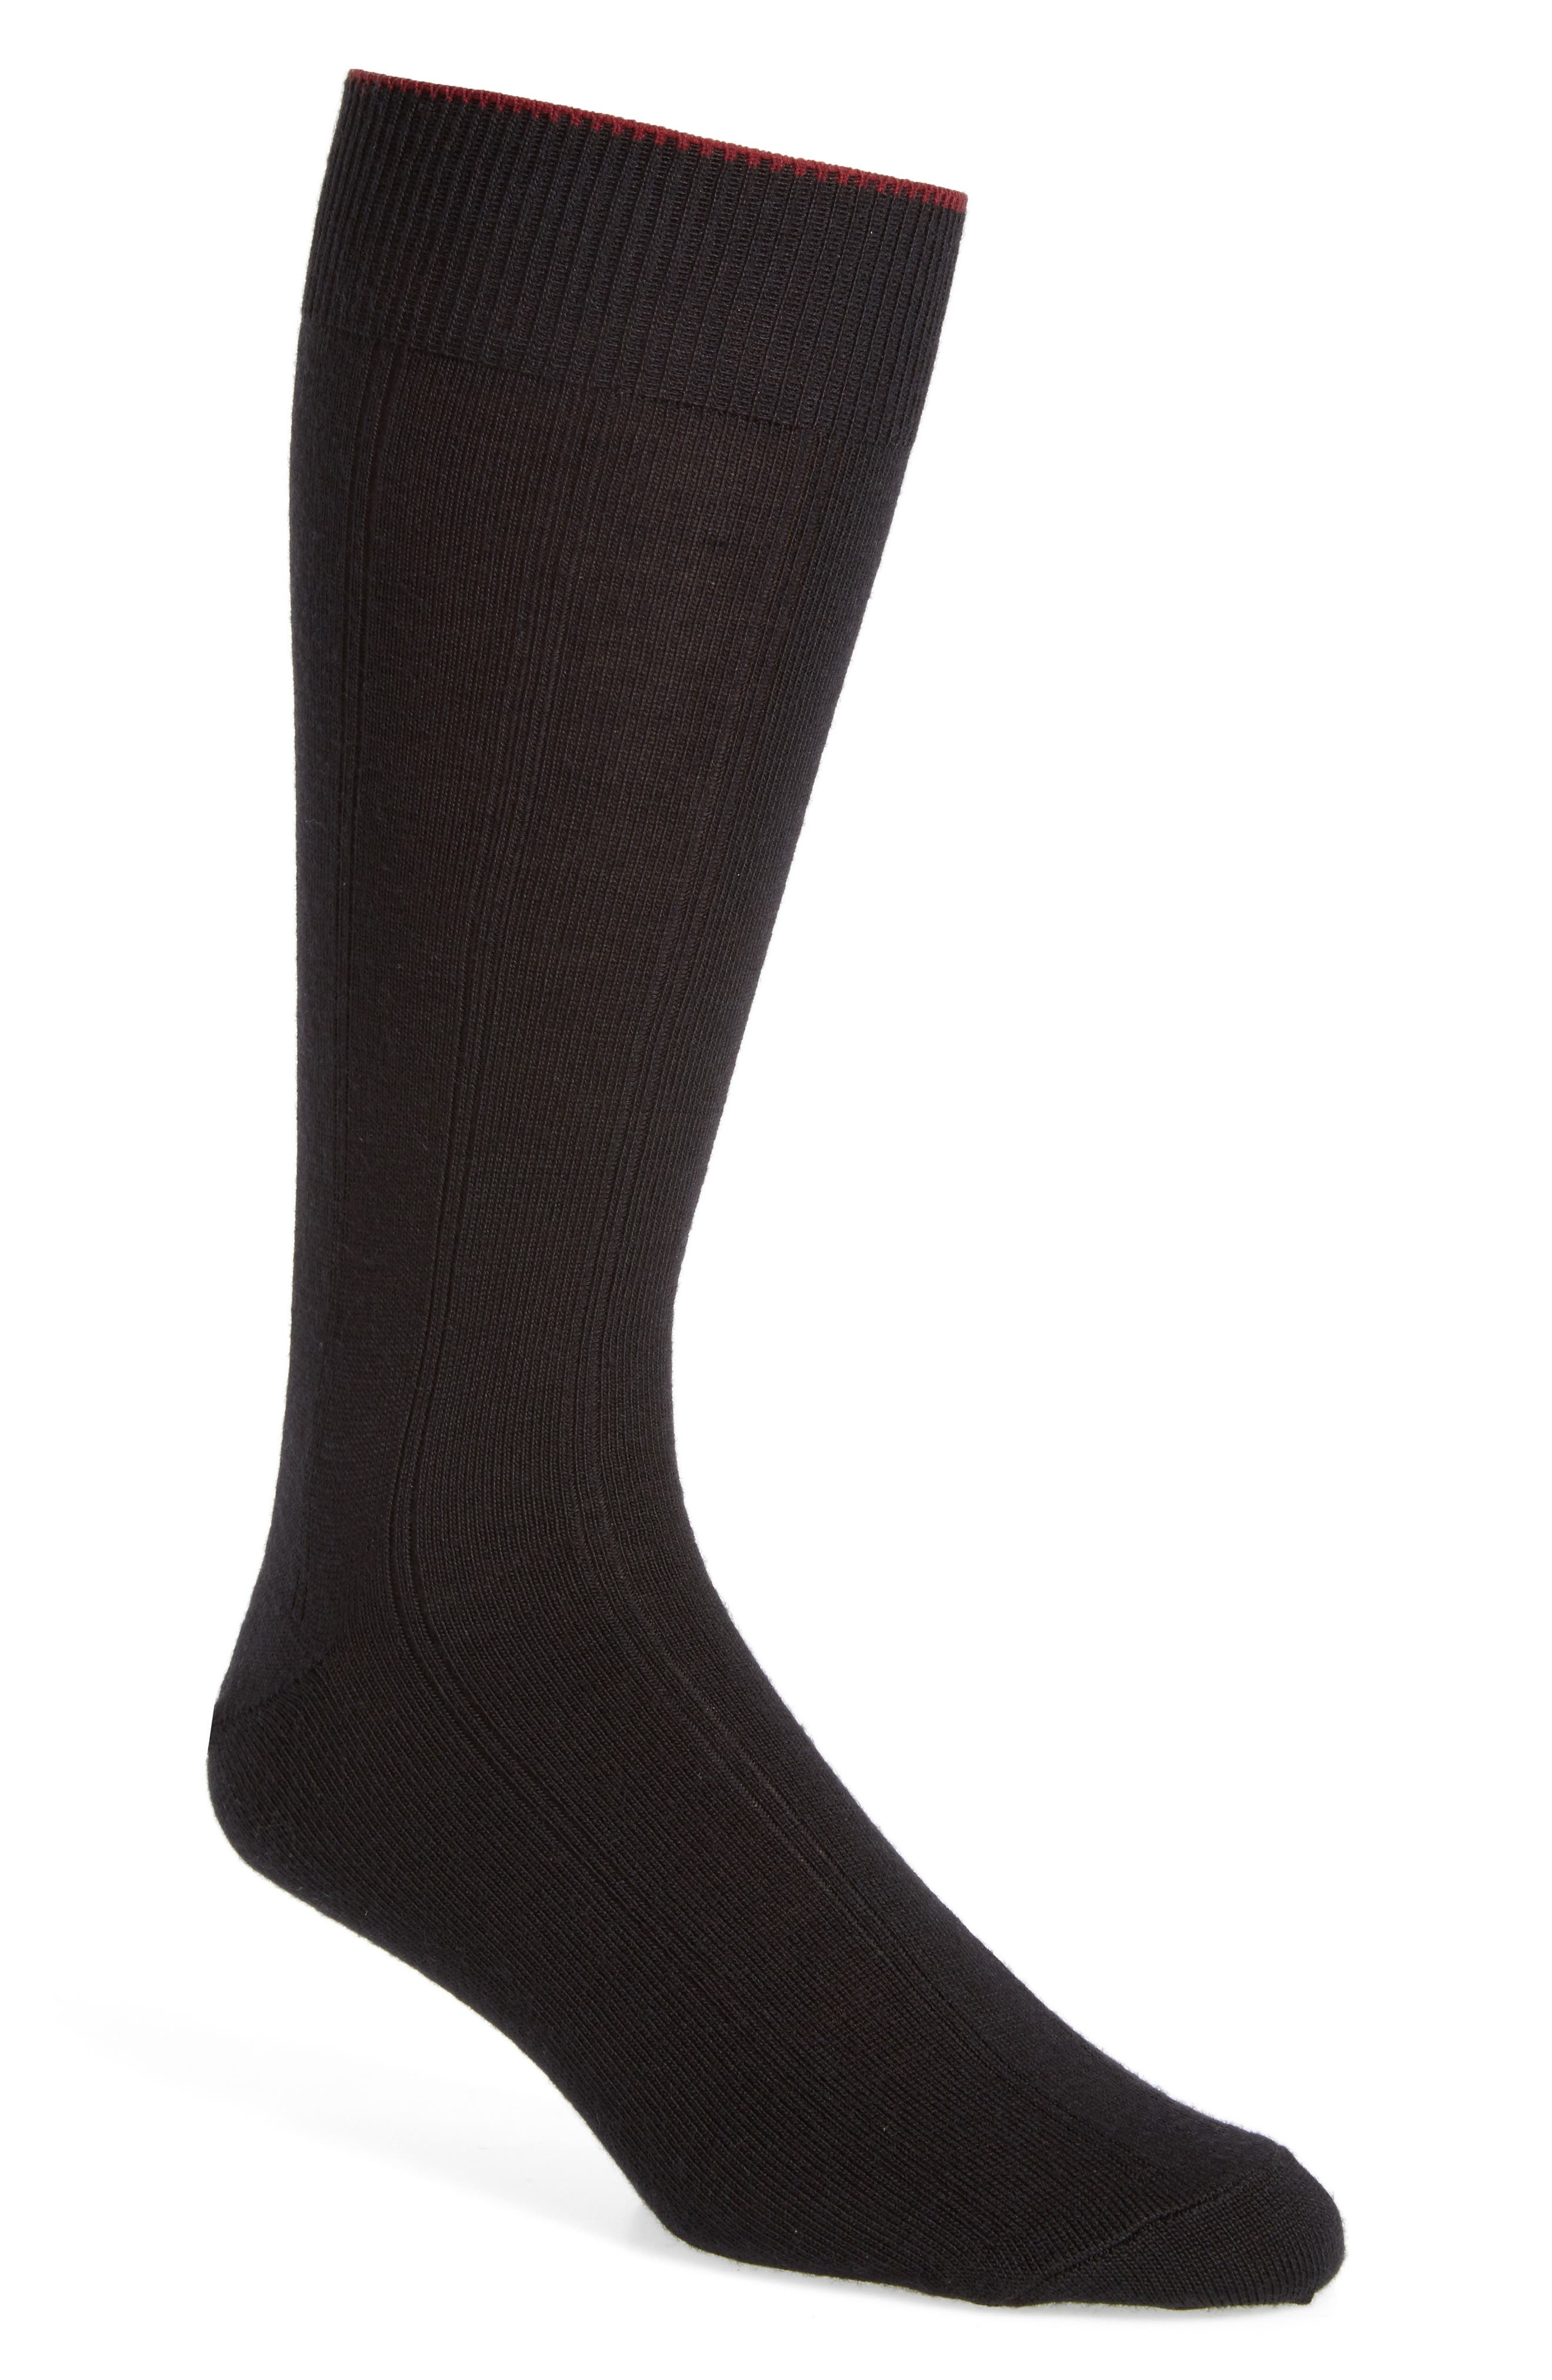 Main Image - Nordstrom Mens Shop Rib Wool Blend Socks (Men) (3 for $30)